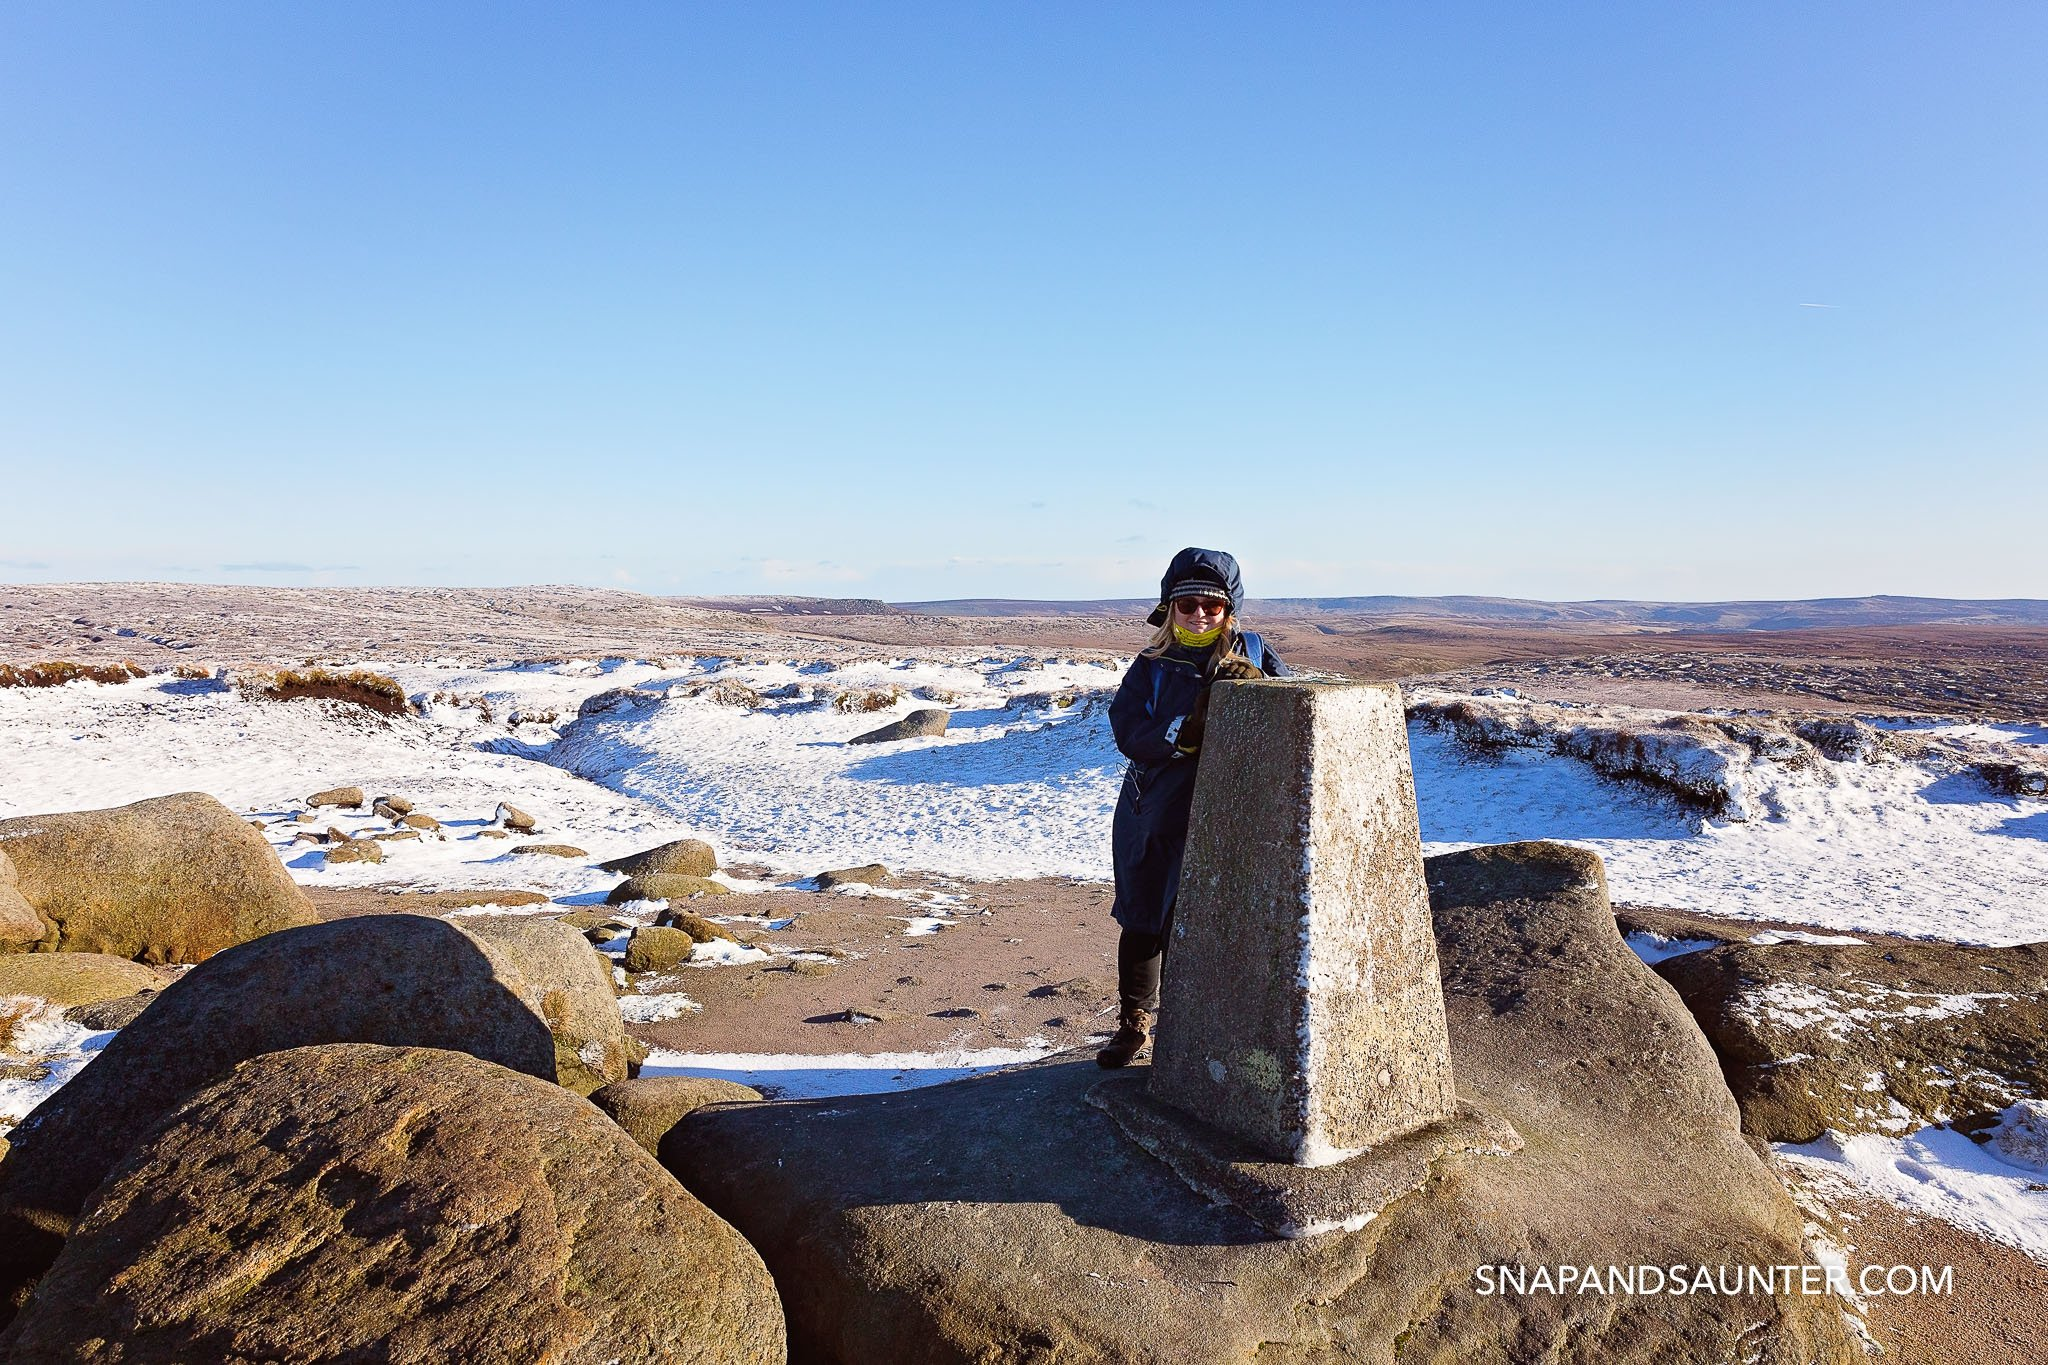 A woman in sunglasses all wrapped up in winter standing next to a trig point at Higher Shelf Stone summit at Bleaklow in Derbyshire